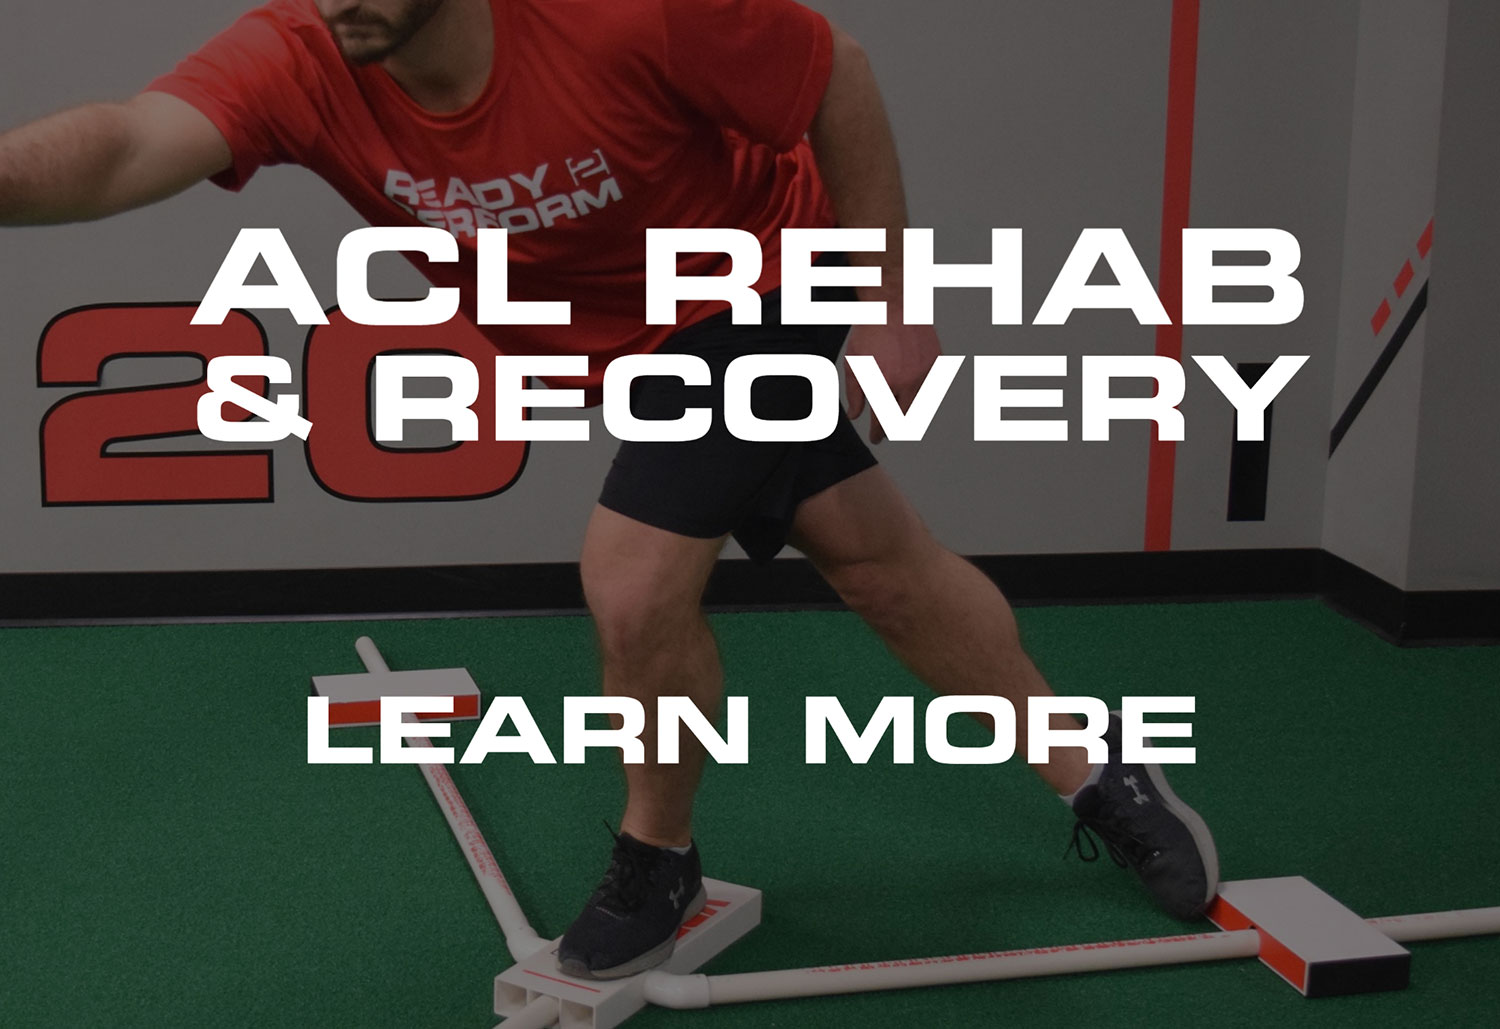 ACL Rehab Recovery